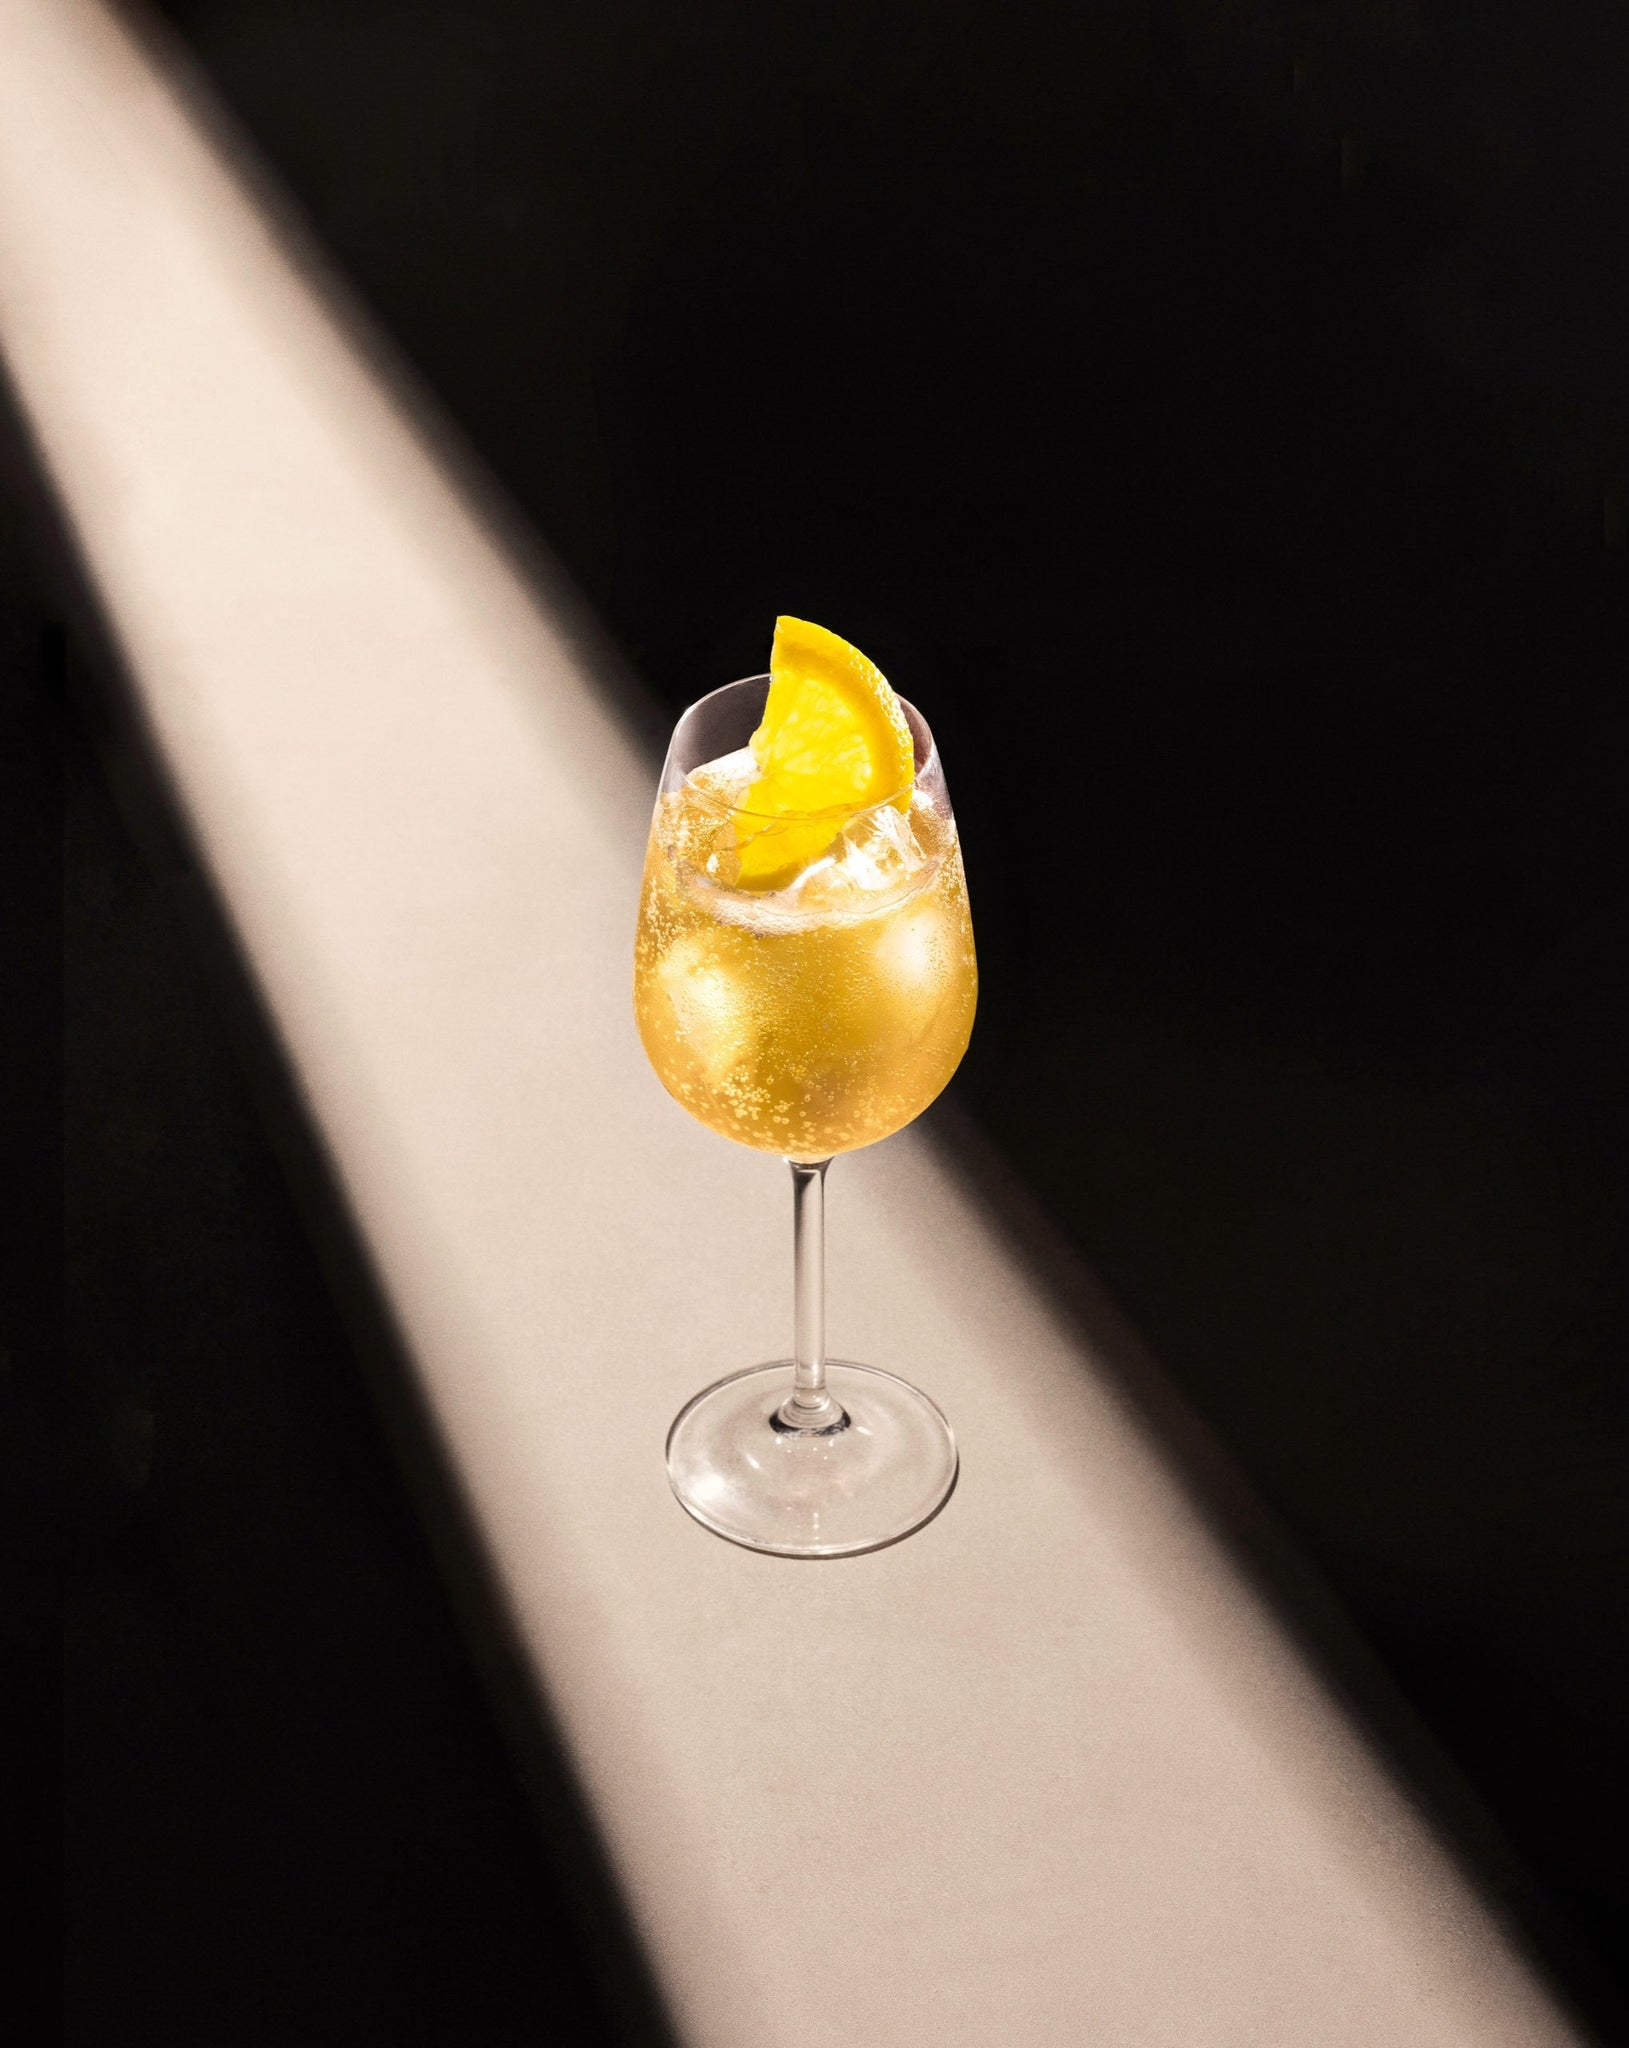 Pear & White Tea Fizz cocktail in a wine glass with ice and garnished with a lemon slice.